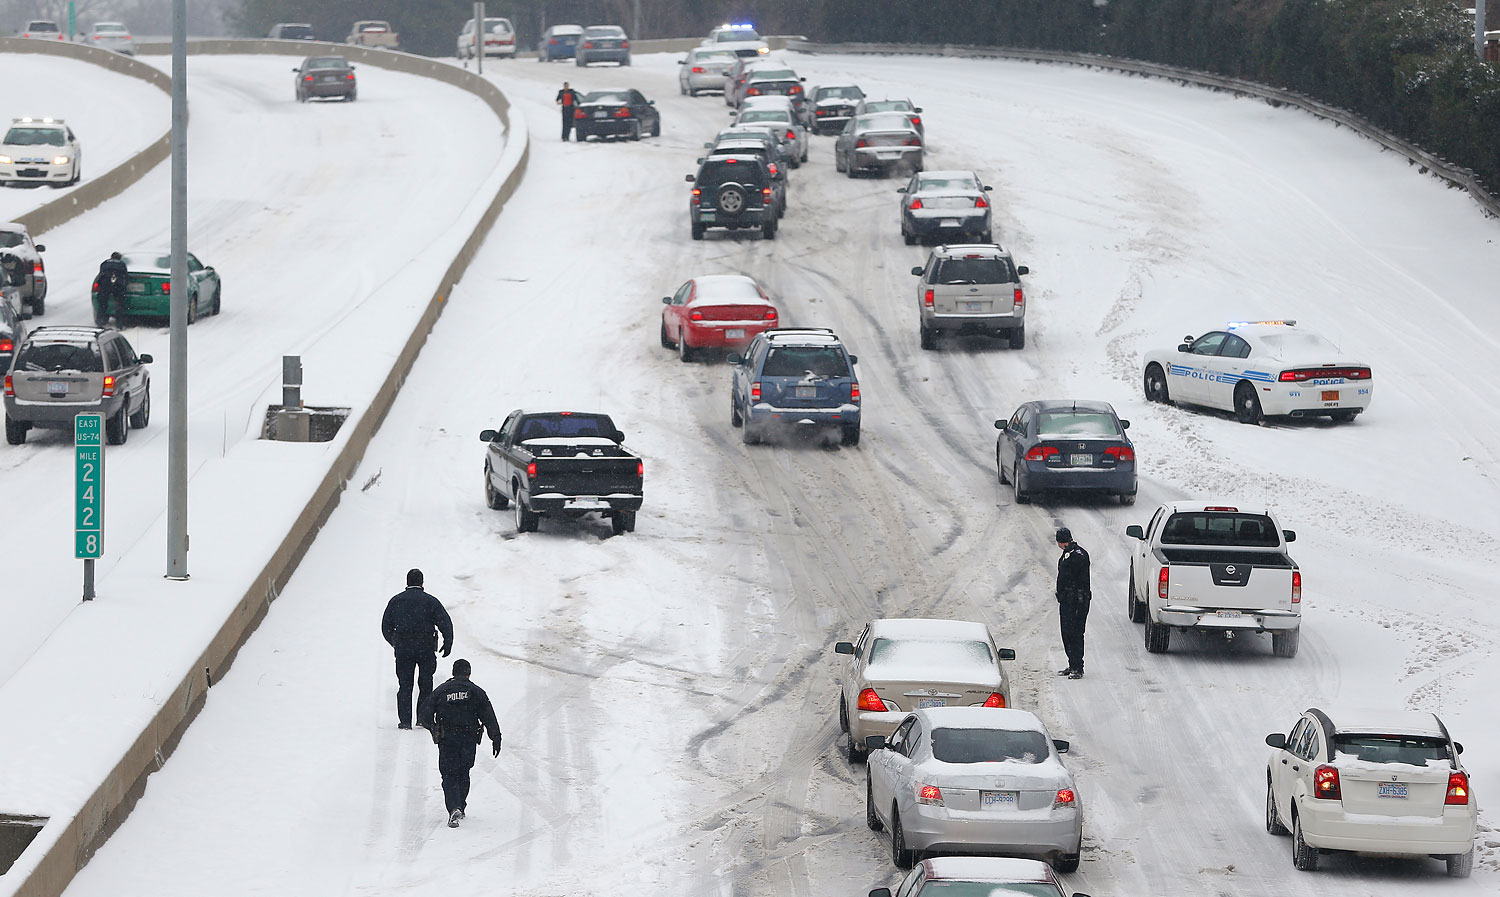 Charlotte Mecklenburg Police Officers work to assist motorists as they attempt to drive up a hill that is covered in snow in Charlotte, North Carolina Feb. 12, 2014.